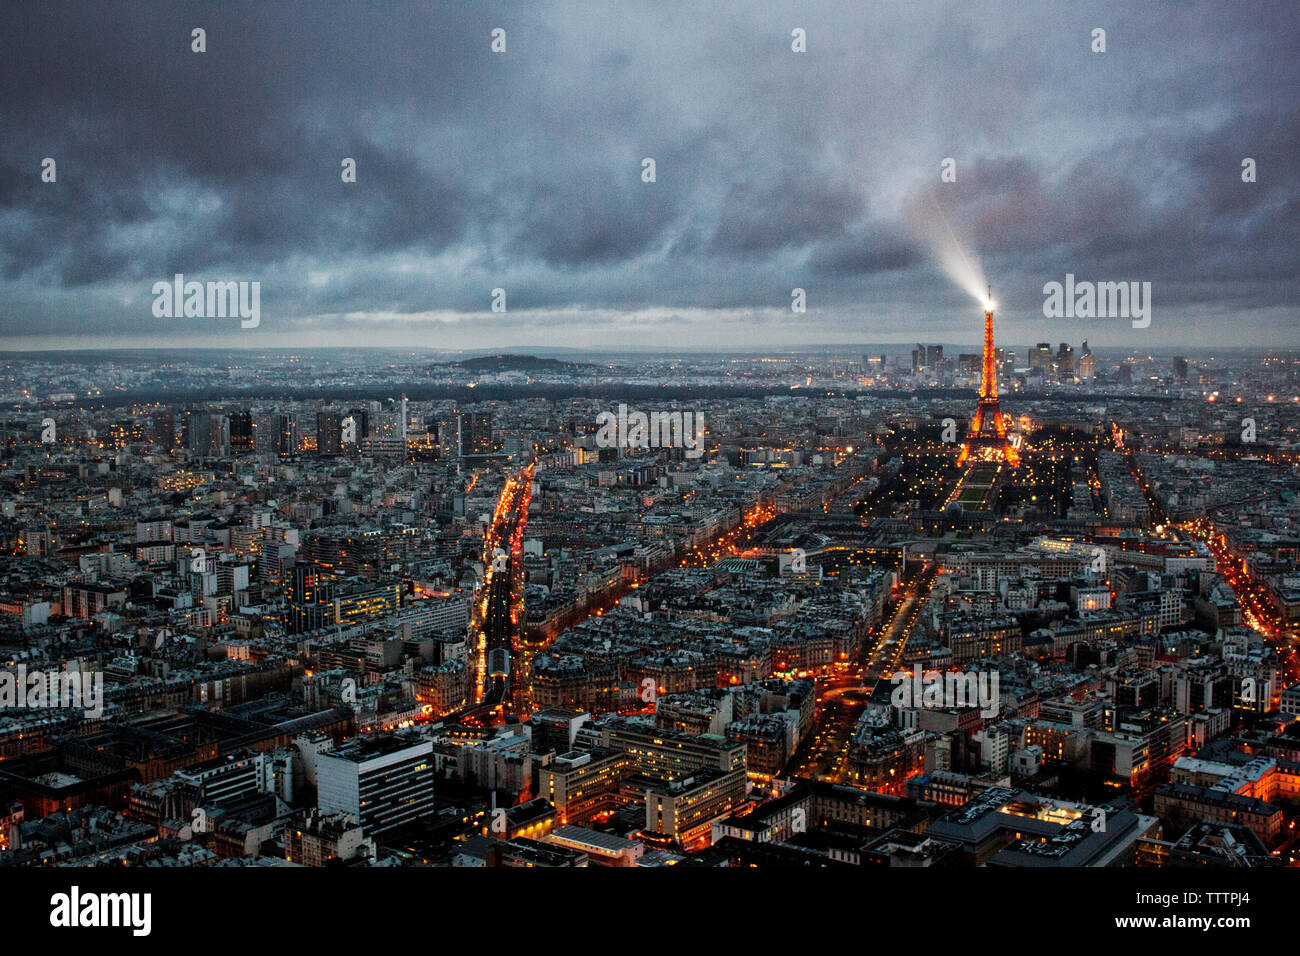 Aerial view of cityscape with illuminated Eiffel tower Stock Photo